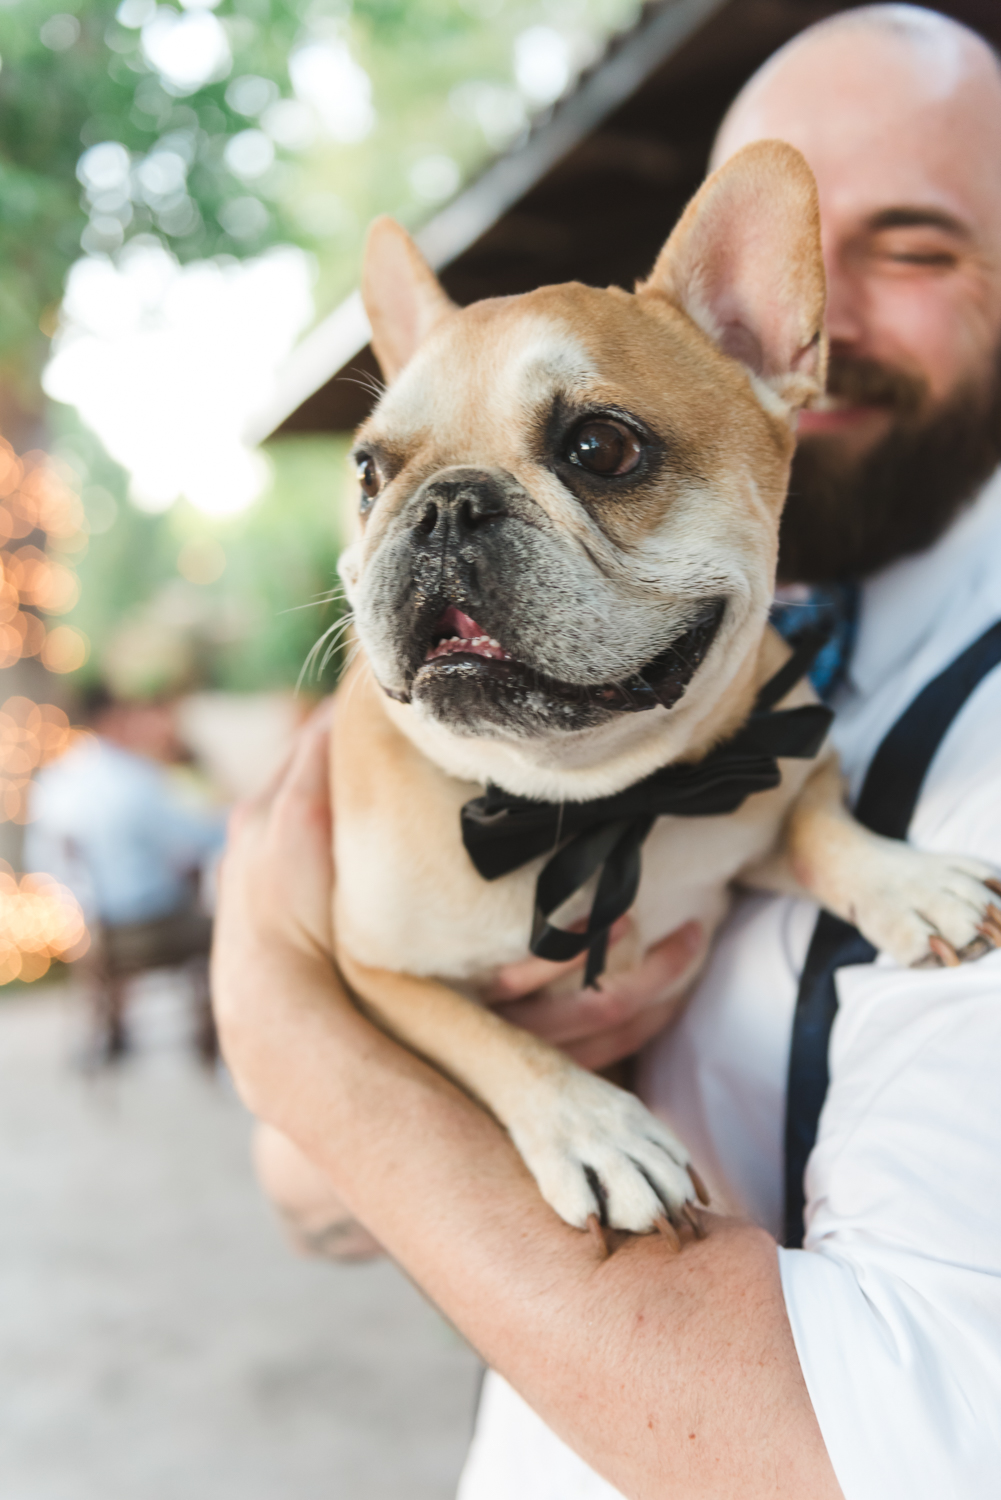 Groom holds French Bulldog wearing a bowtie | Pets In Human Photo Session